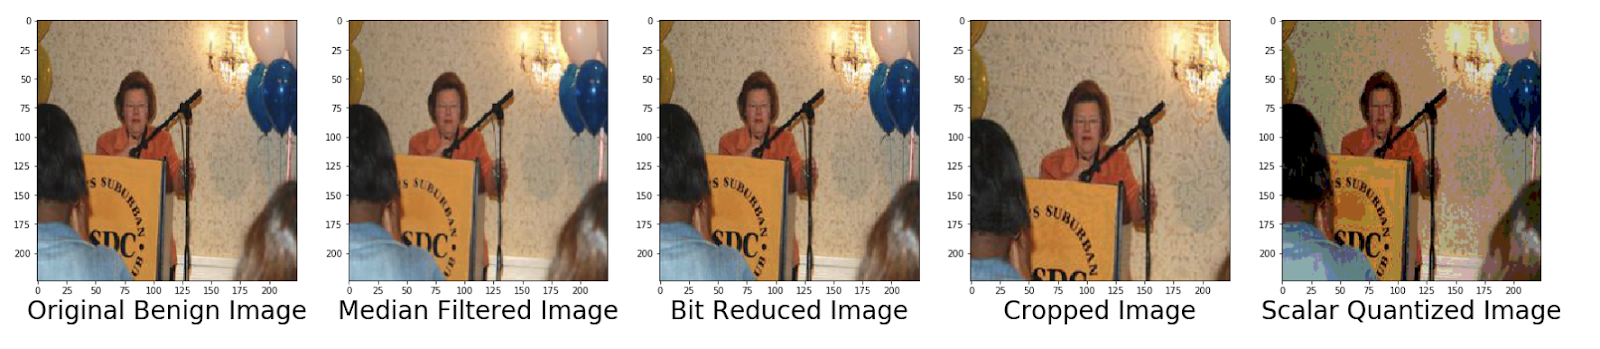 Figure 6. Original benign political image and its four image-processed versions.